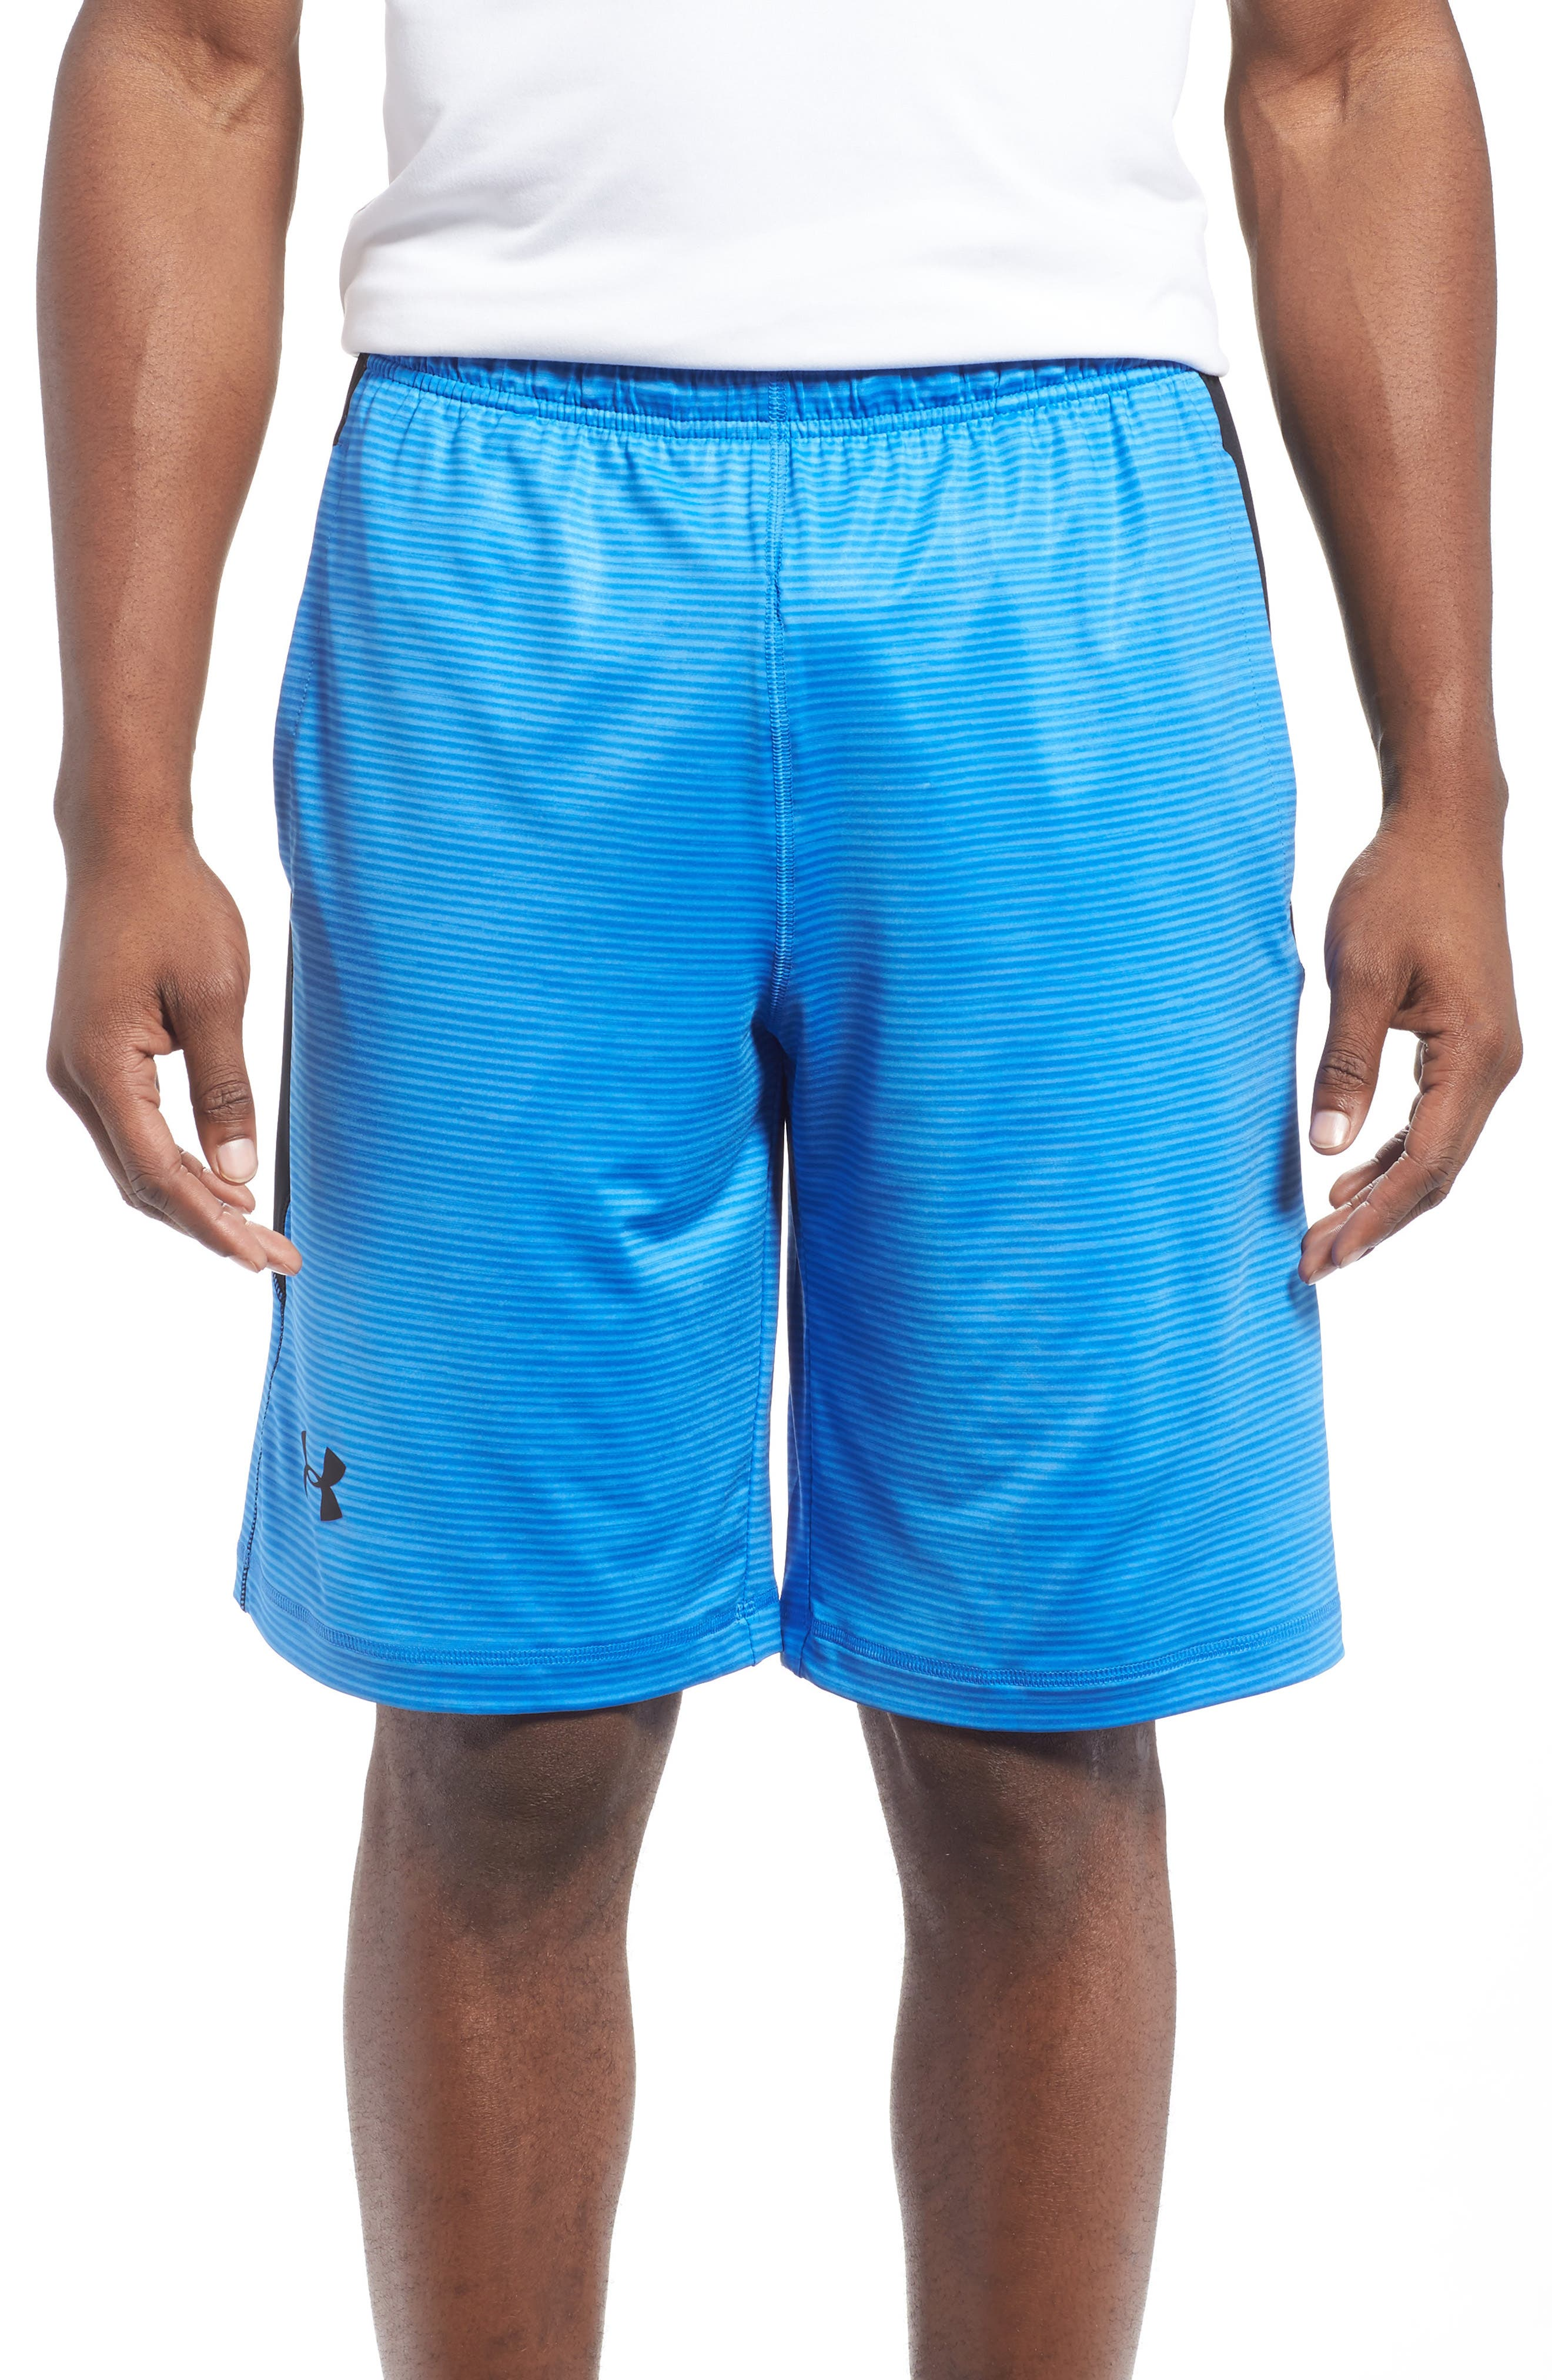 Alternate Image 1 Selected - Under Armour 'Raid' HeatGear® Loose Fit Athletic Shorts